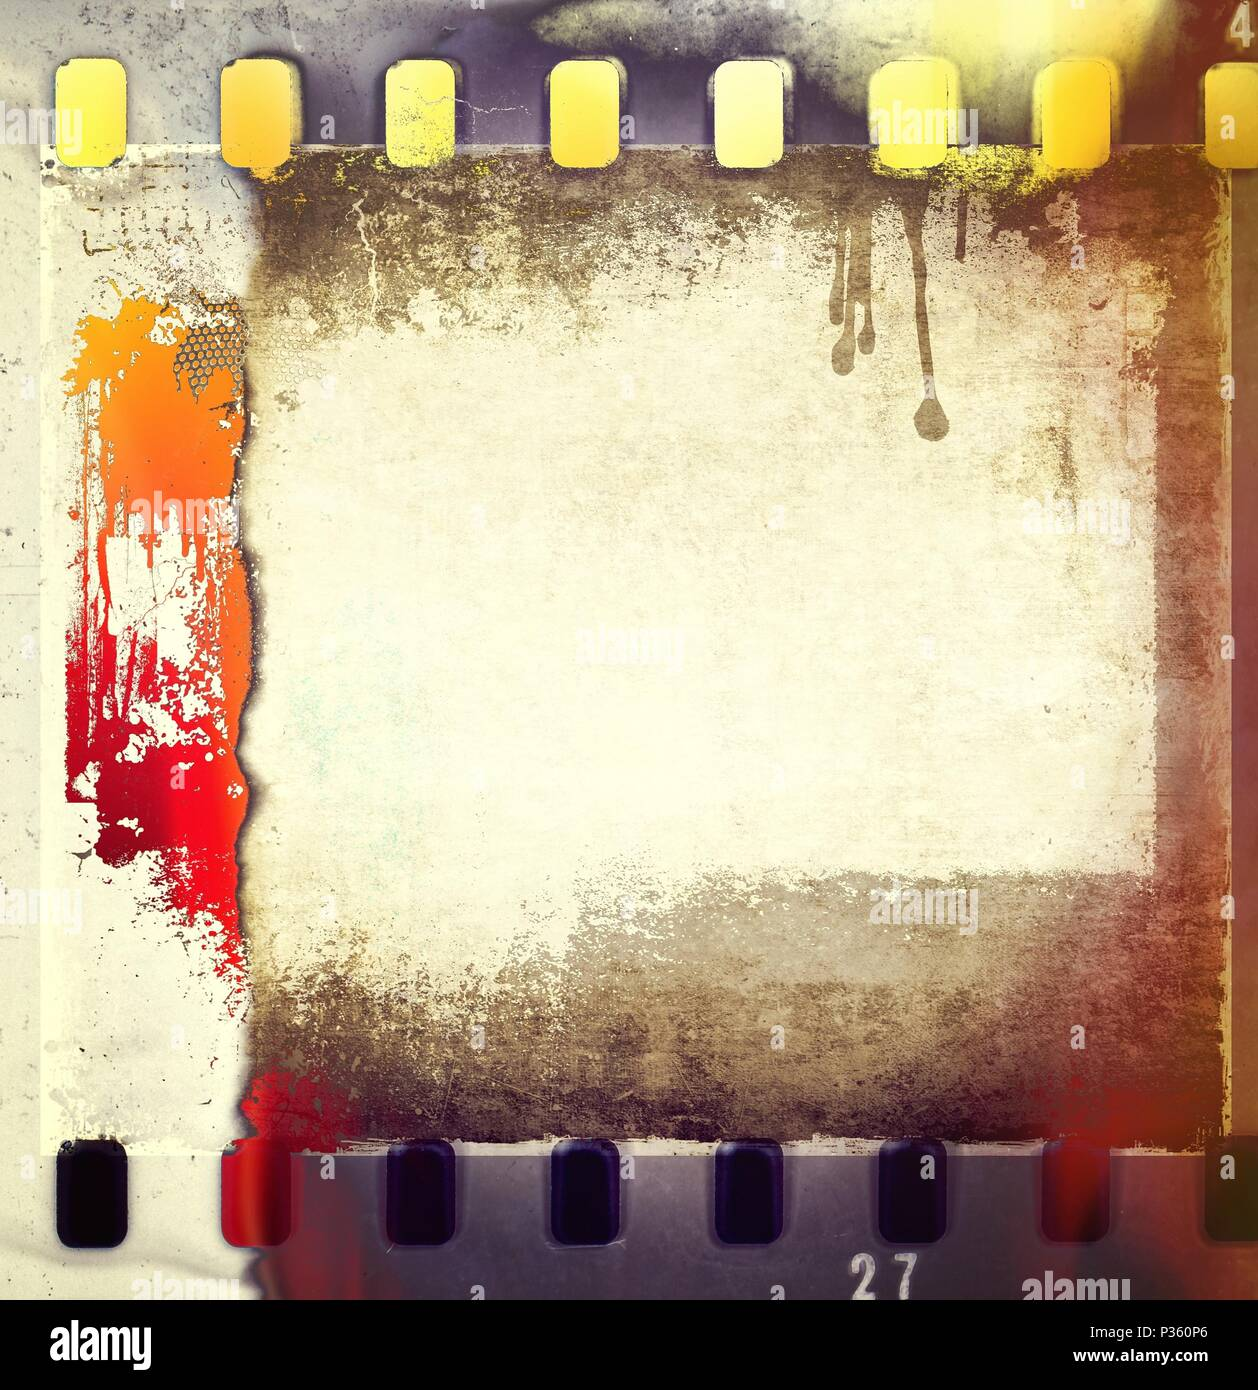 Retro film strip frames in red and yellow tones with copy space. - Stock Image